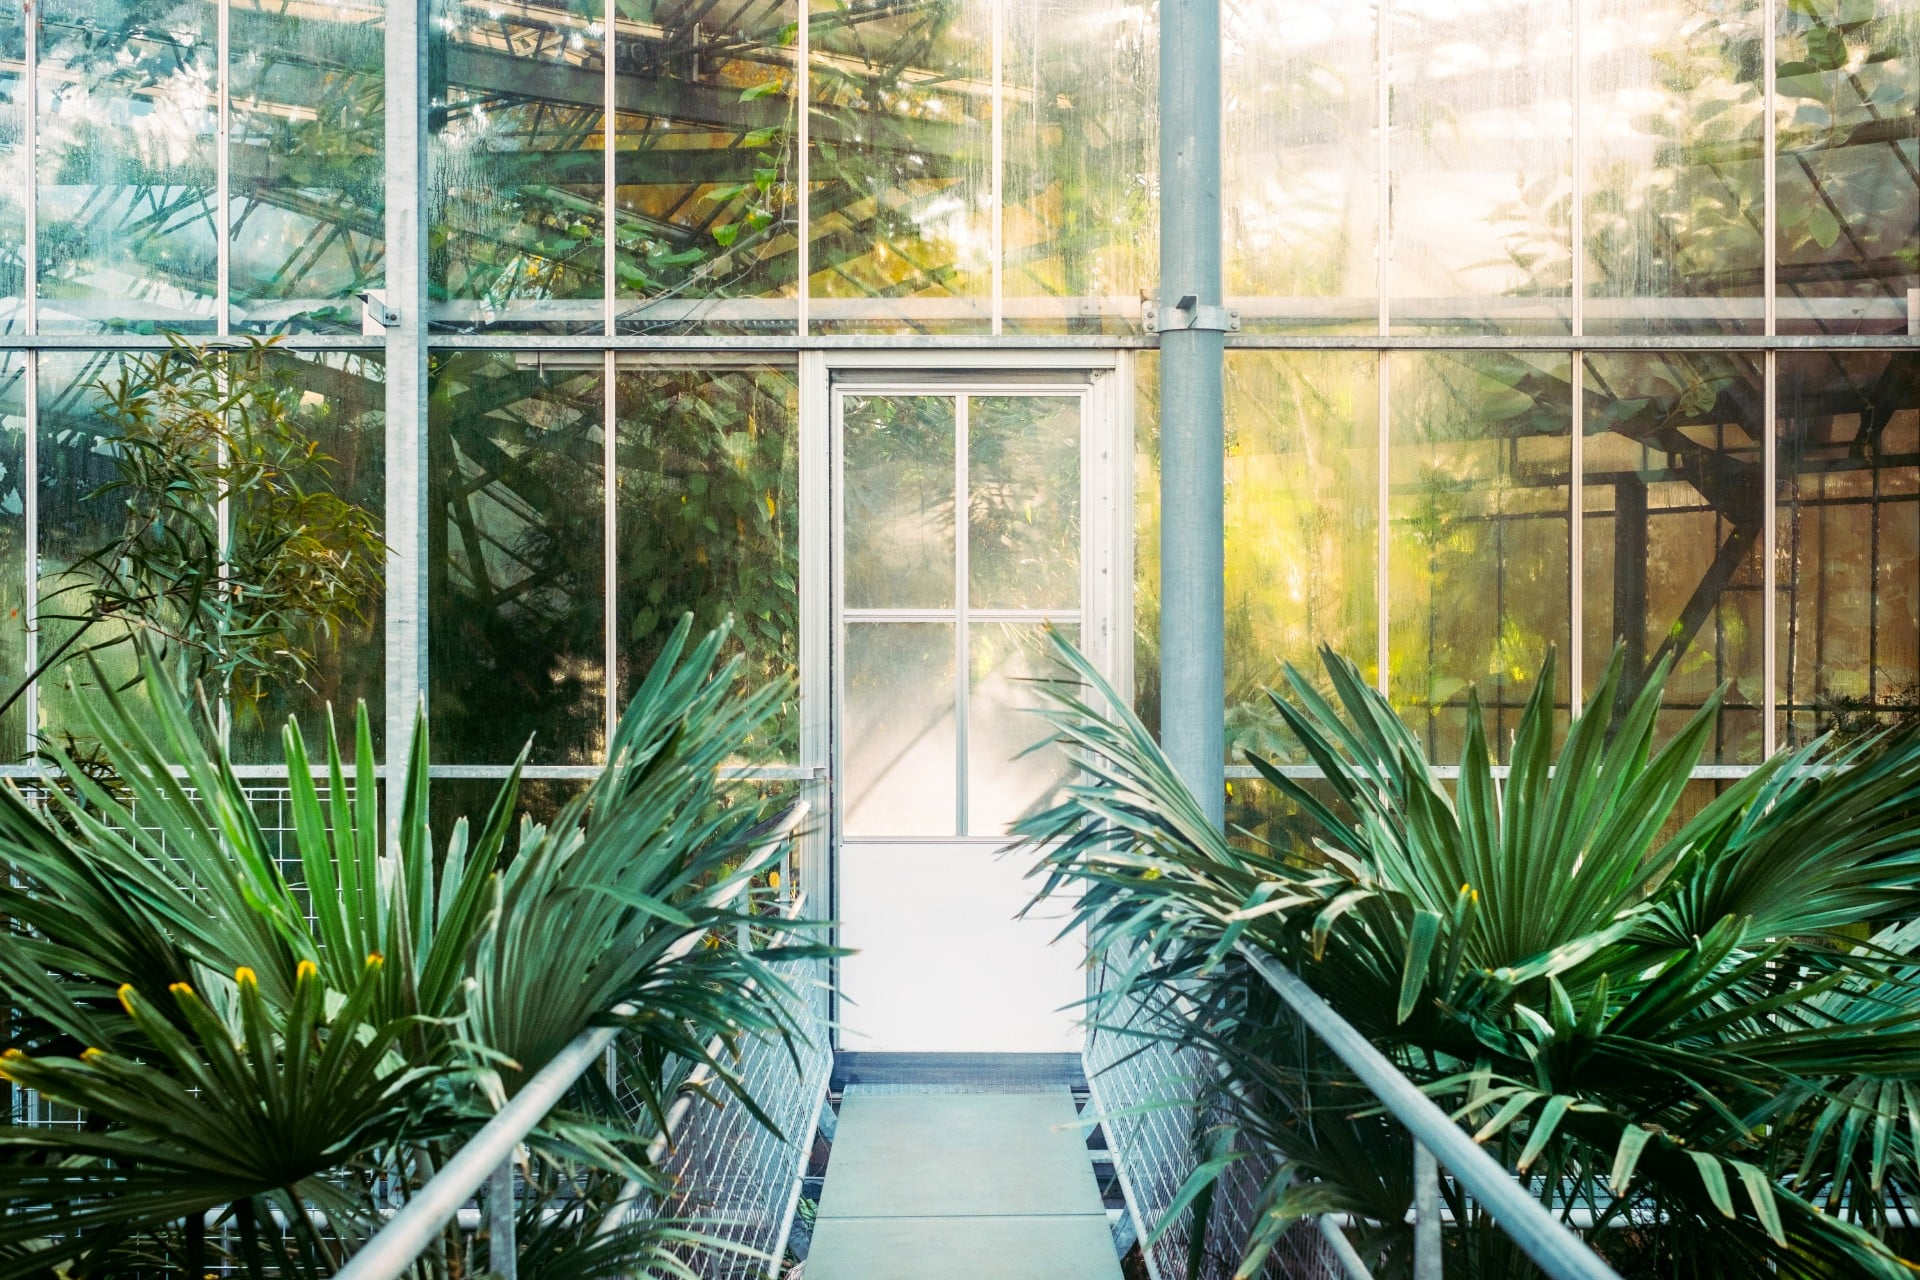 bright-airy-indoor-botanical-garden-green-plants-against-glass-in-greehouse-in-summer